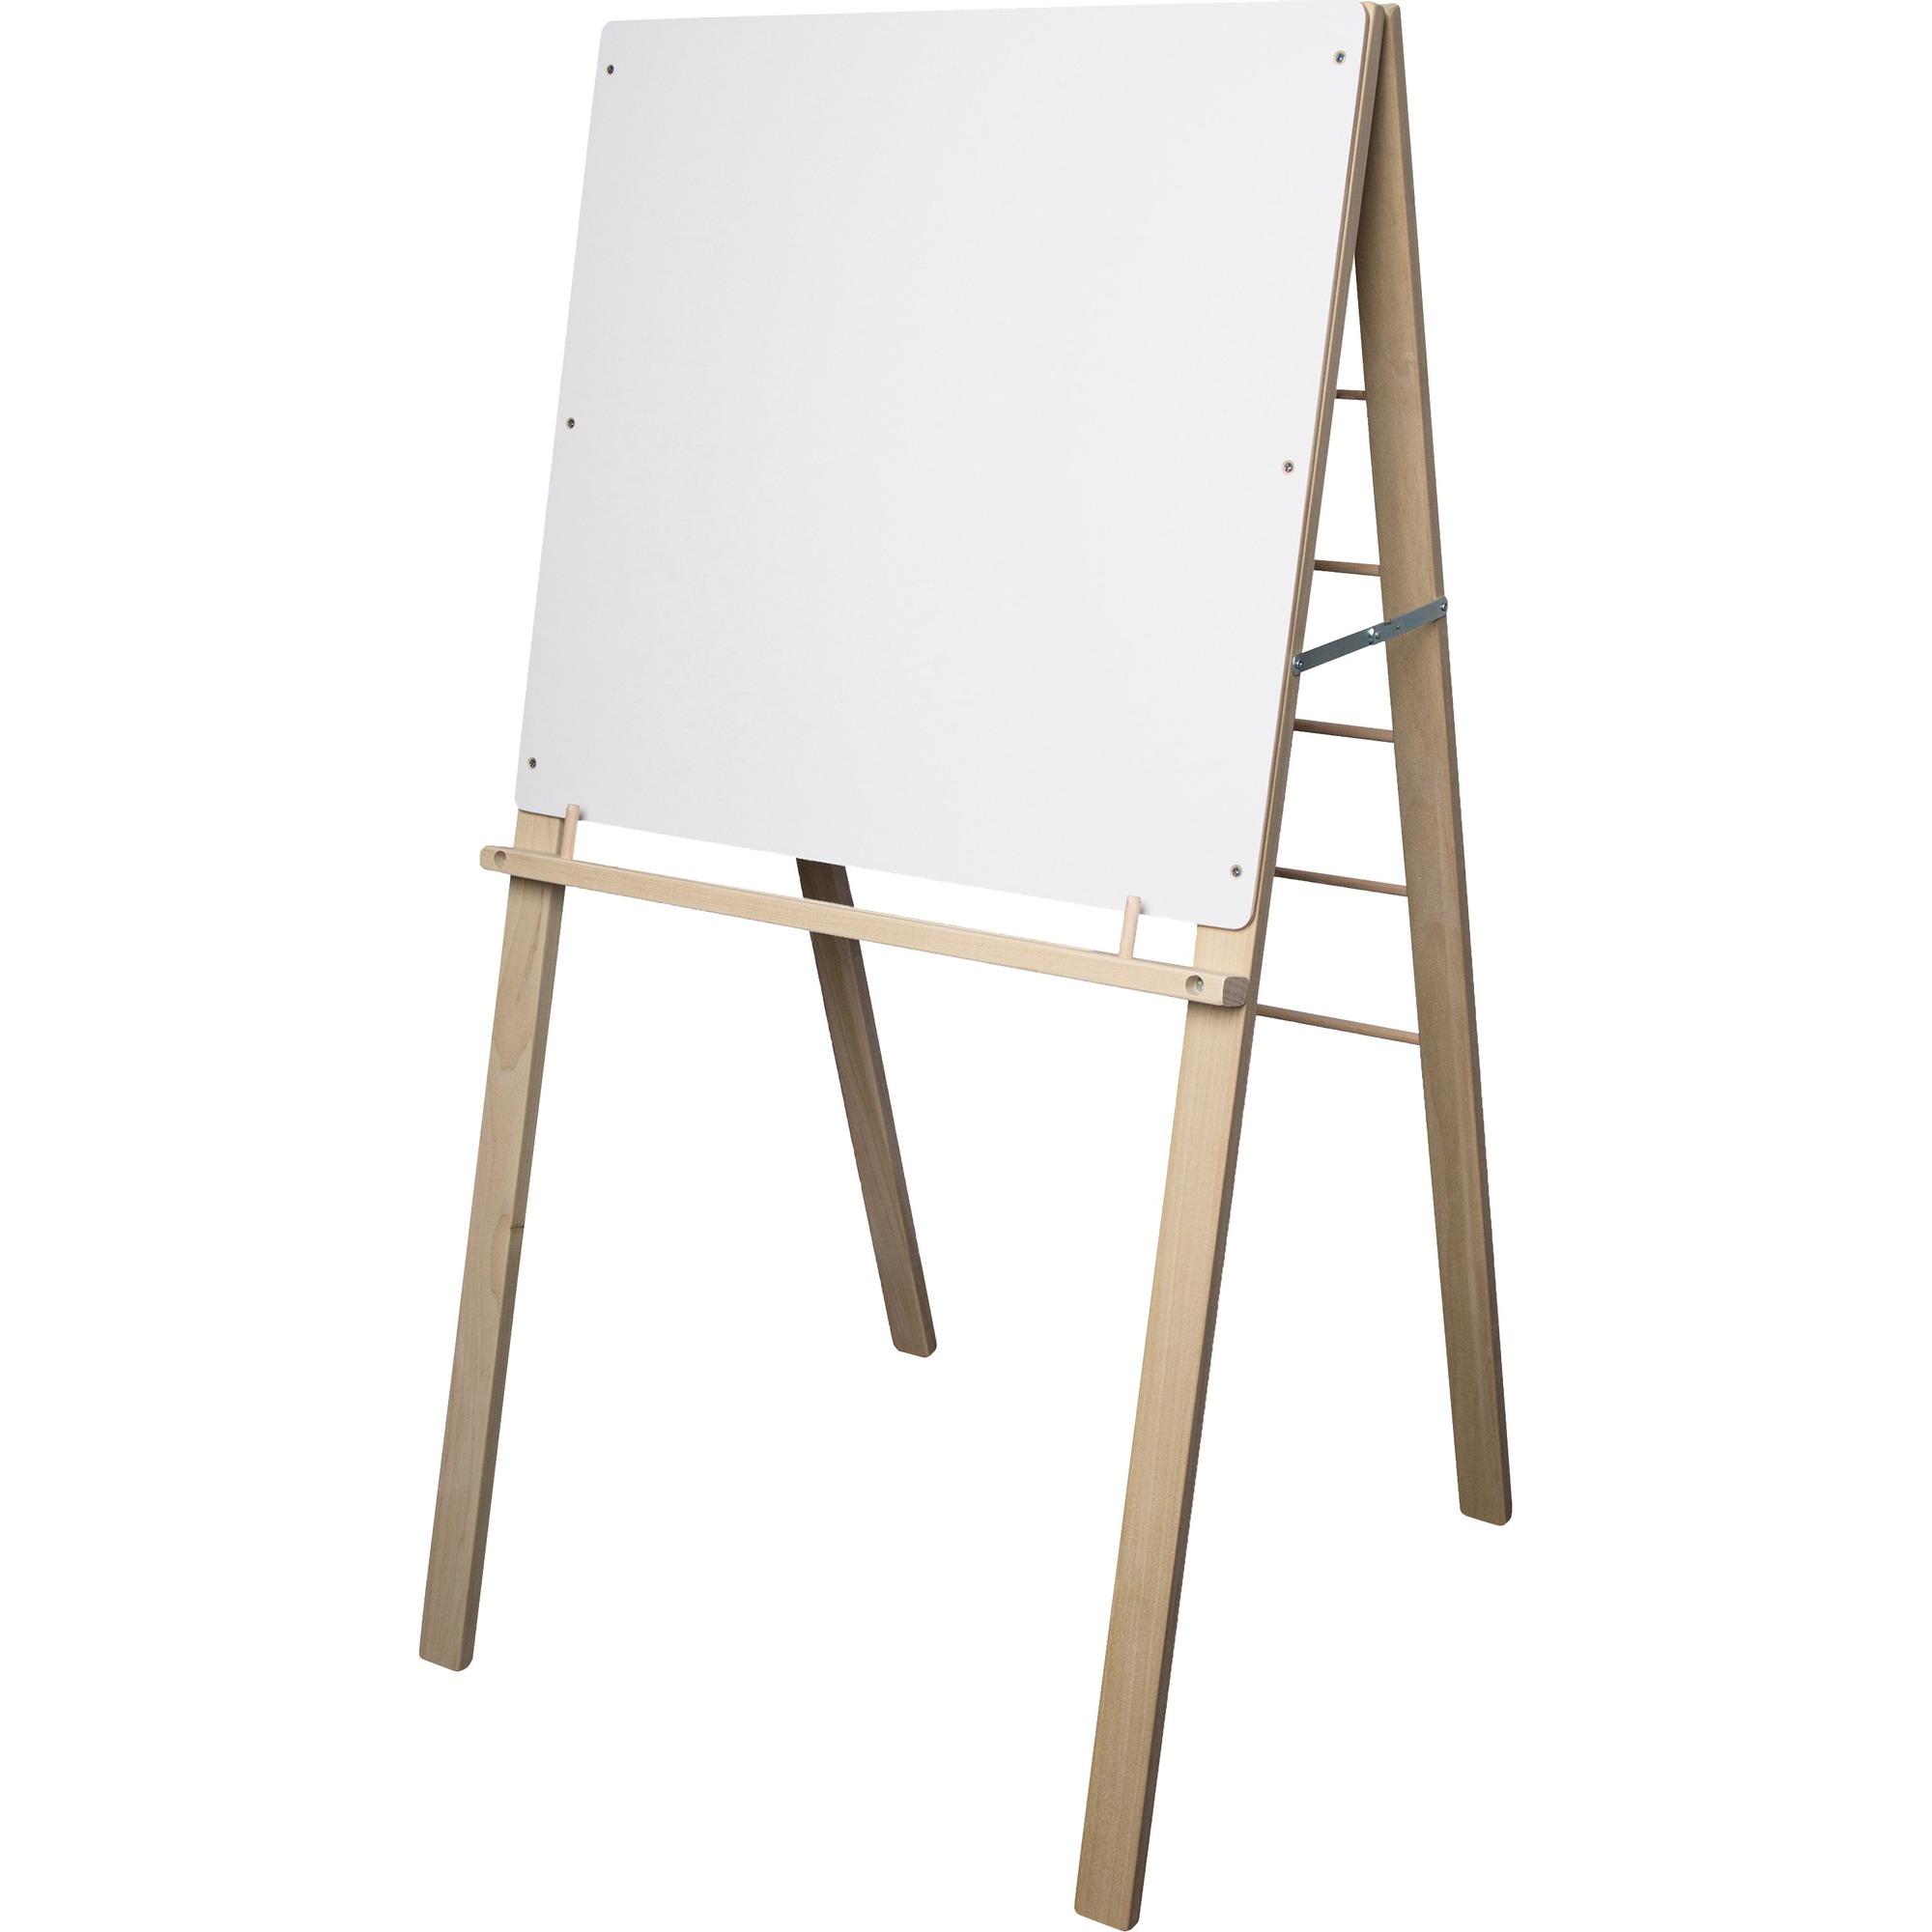 Flipside Products, Inc Flipside Big Book Easel - 24 (2 Ft) Width X 24 (2 Ft) Height - White Surface - Rectangle - Assembly Required - 1 Each